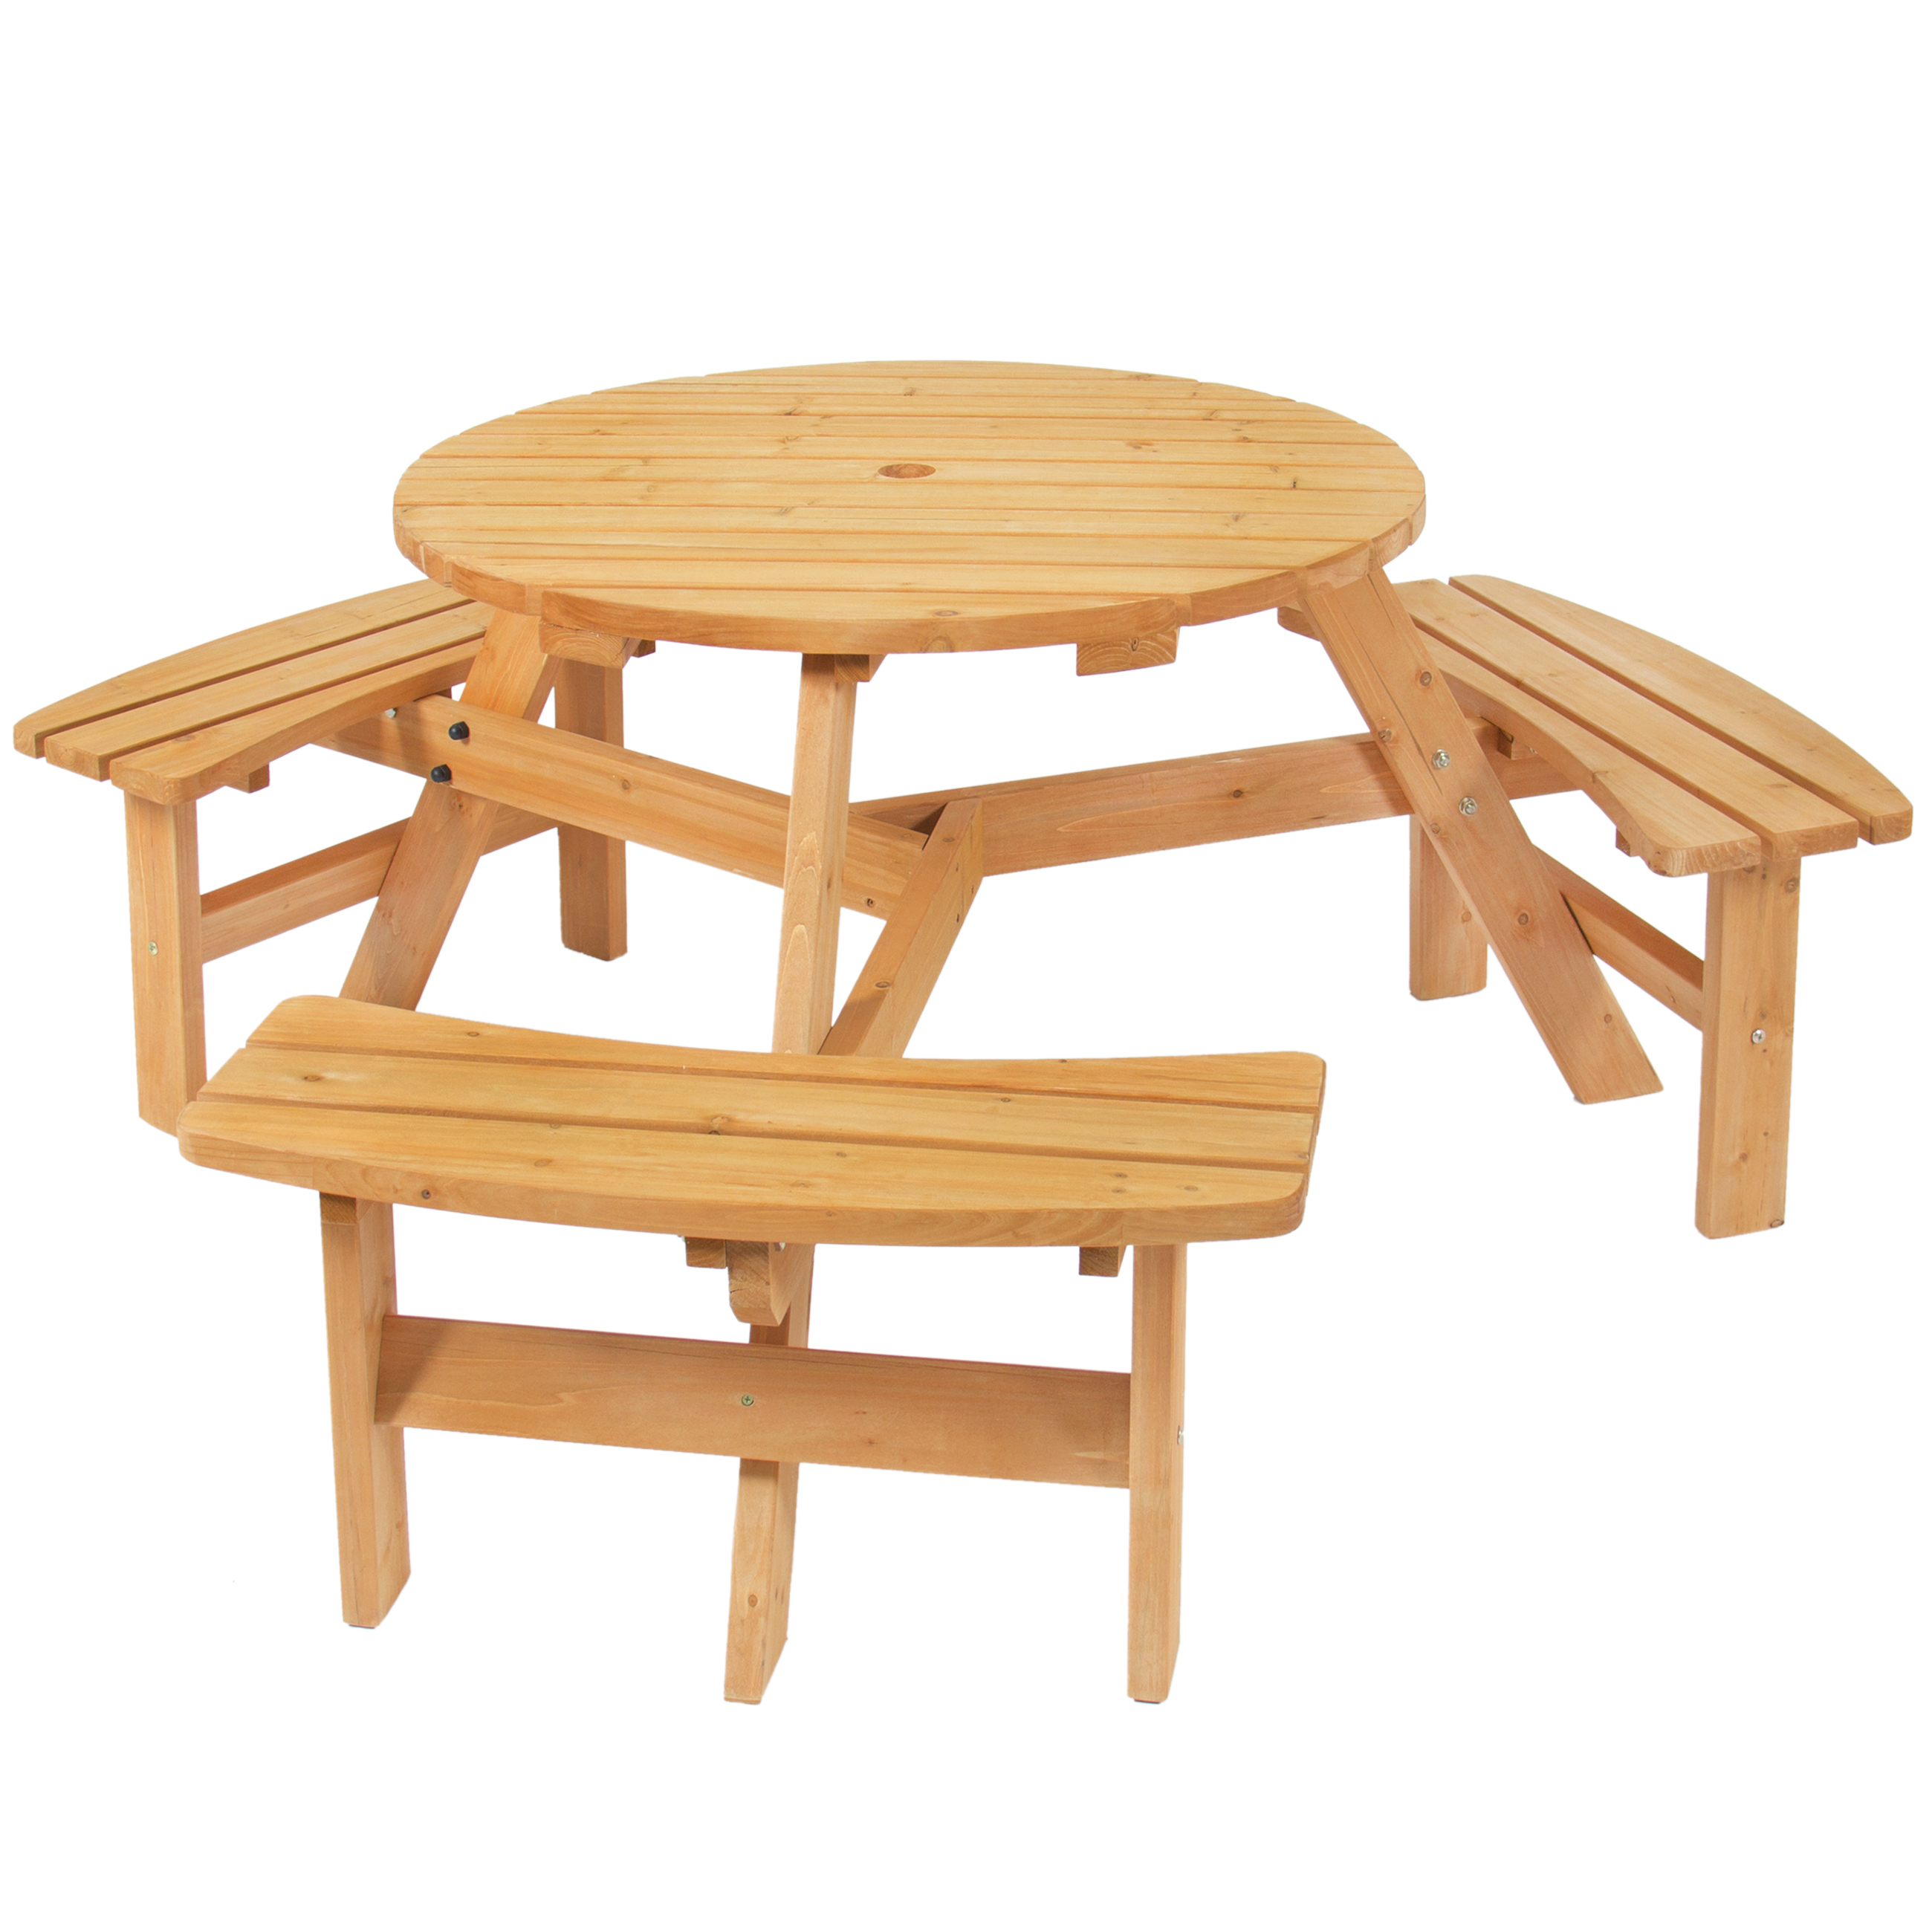 Best Choice Products Outdoor 6 Person Wood Picnic Table Natural Finish Part 79